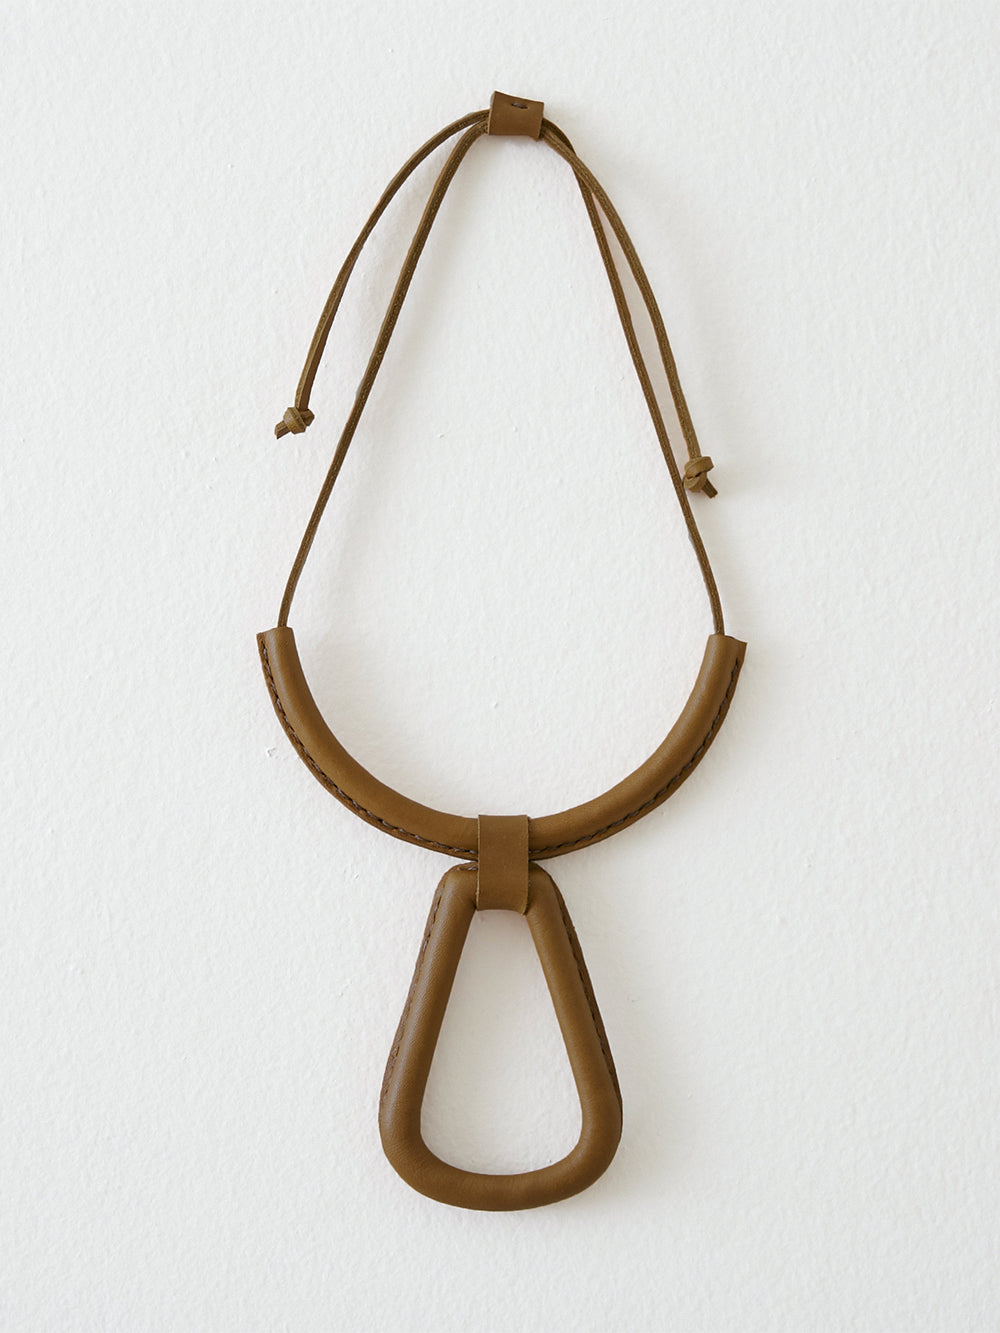 crescioni georgia necklace in olive